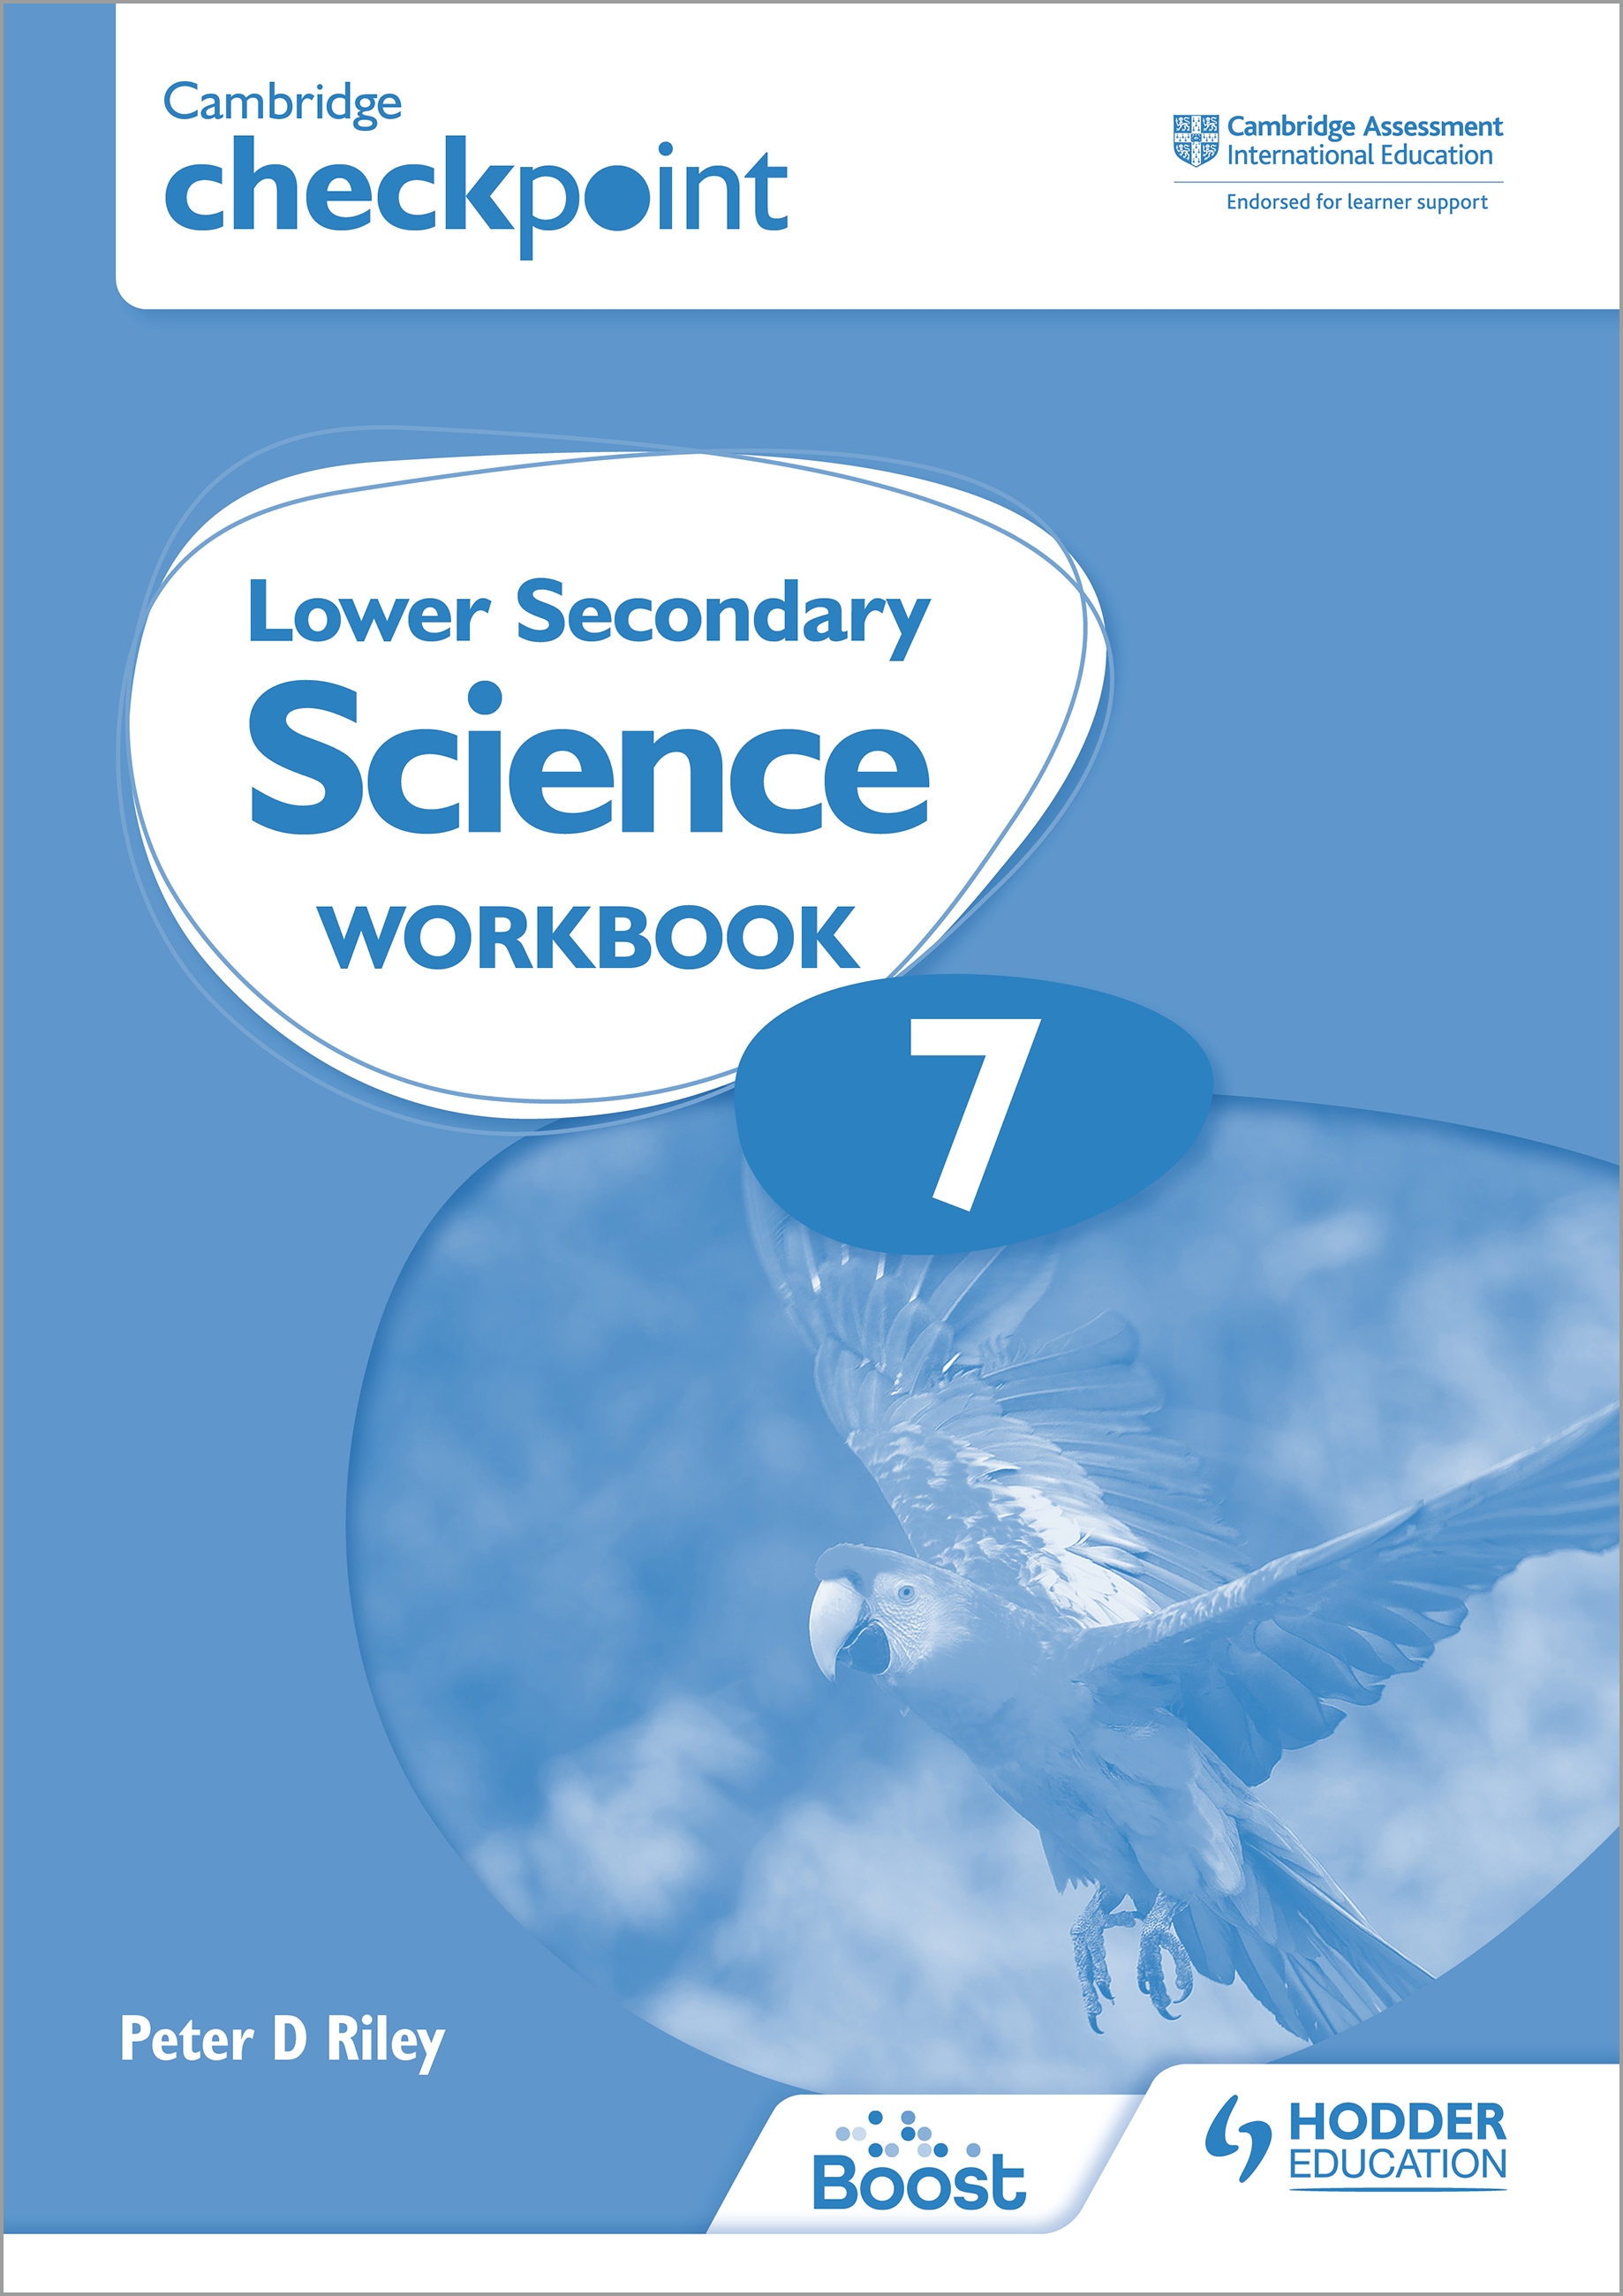 Cambridge Checkpoint Lower Secondary Science Workbook 7 : Second Edition